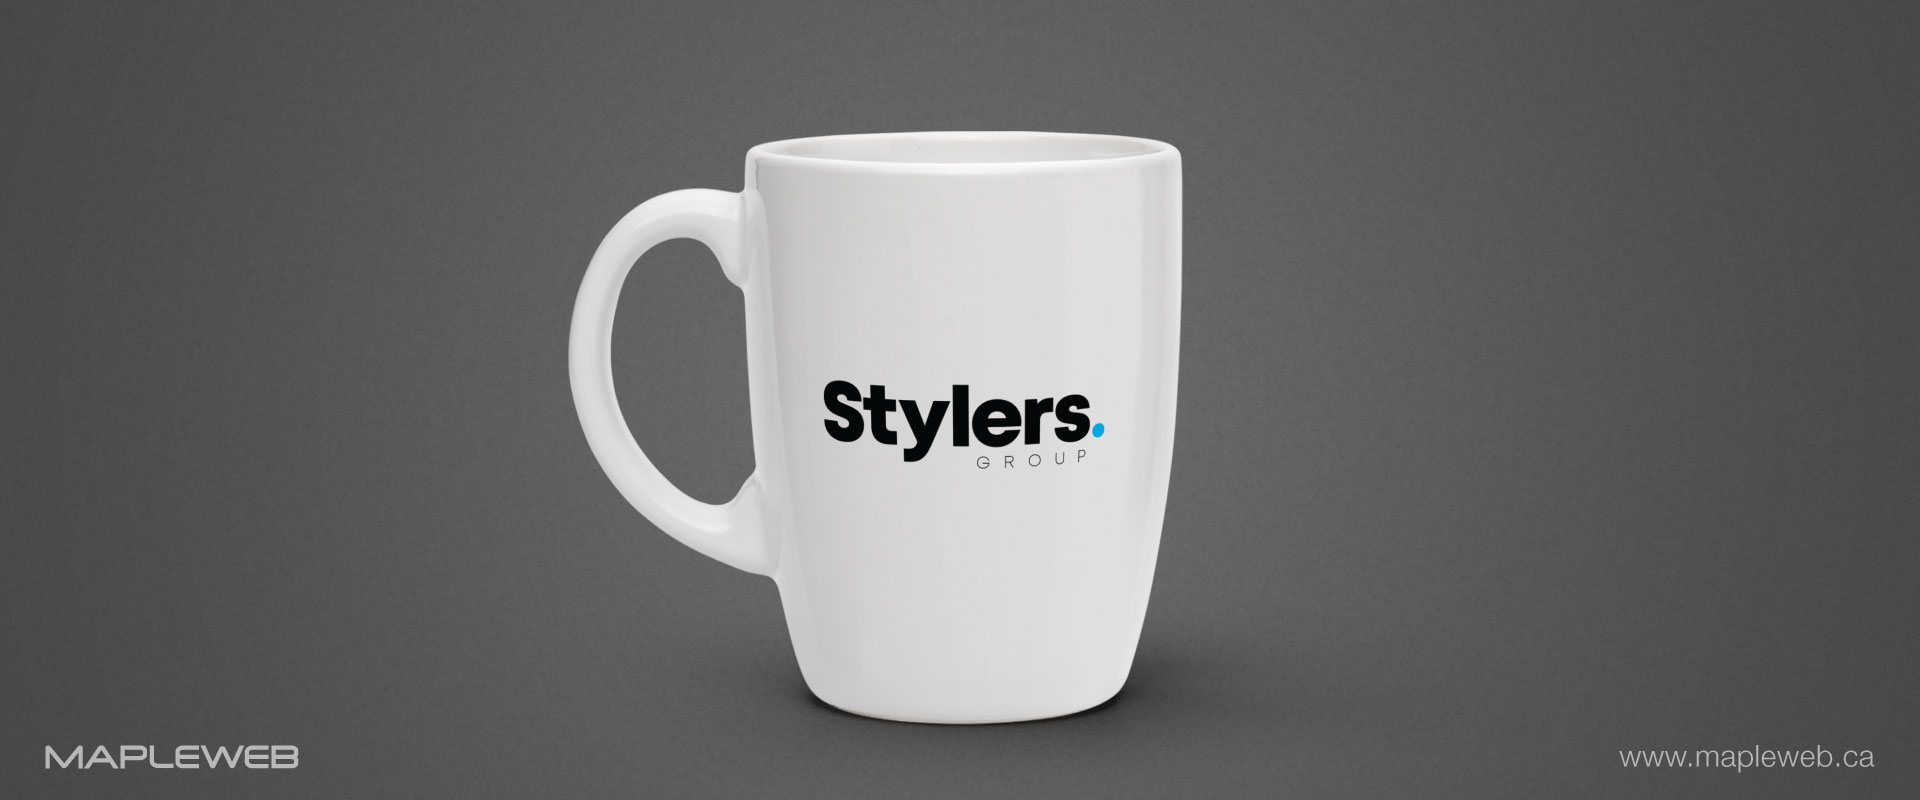 stylers-group-brand-logo-design-by-mapleweb-vancouver-canada-silver-water-bottle-mock